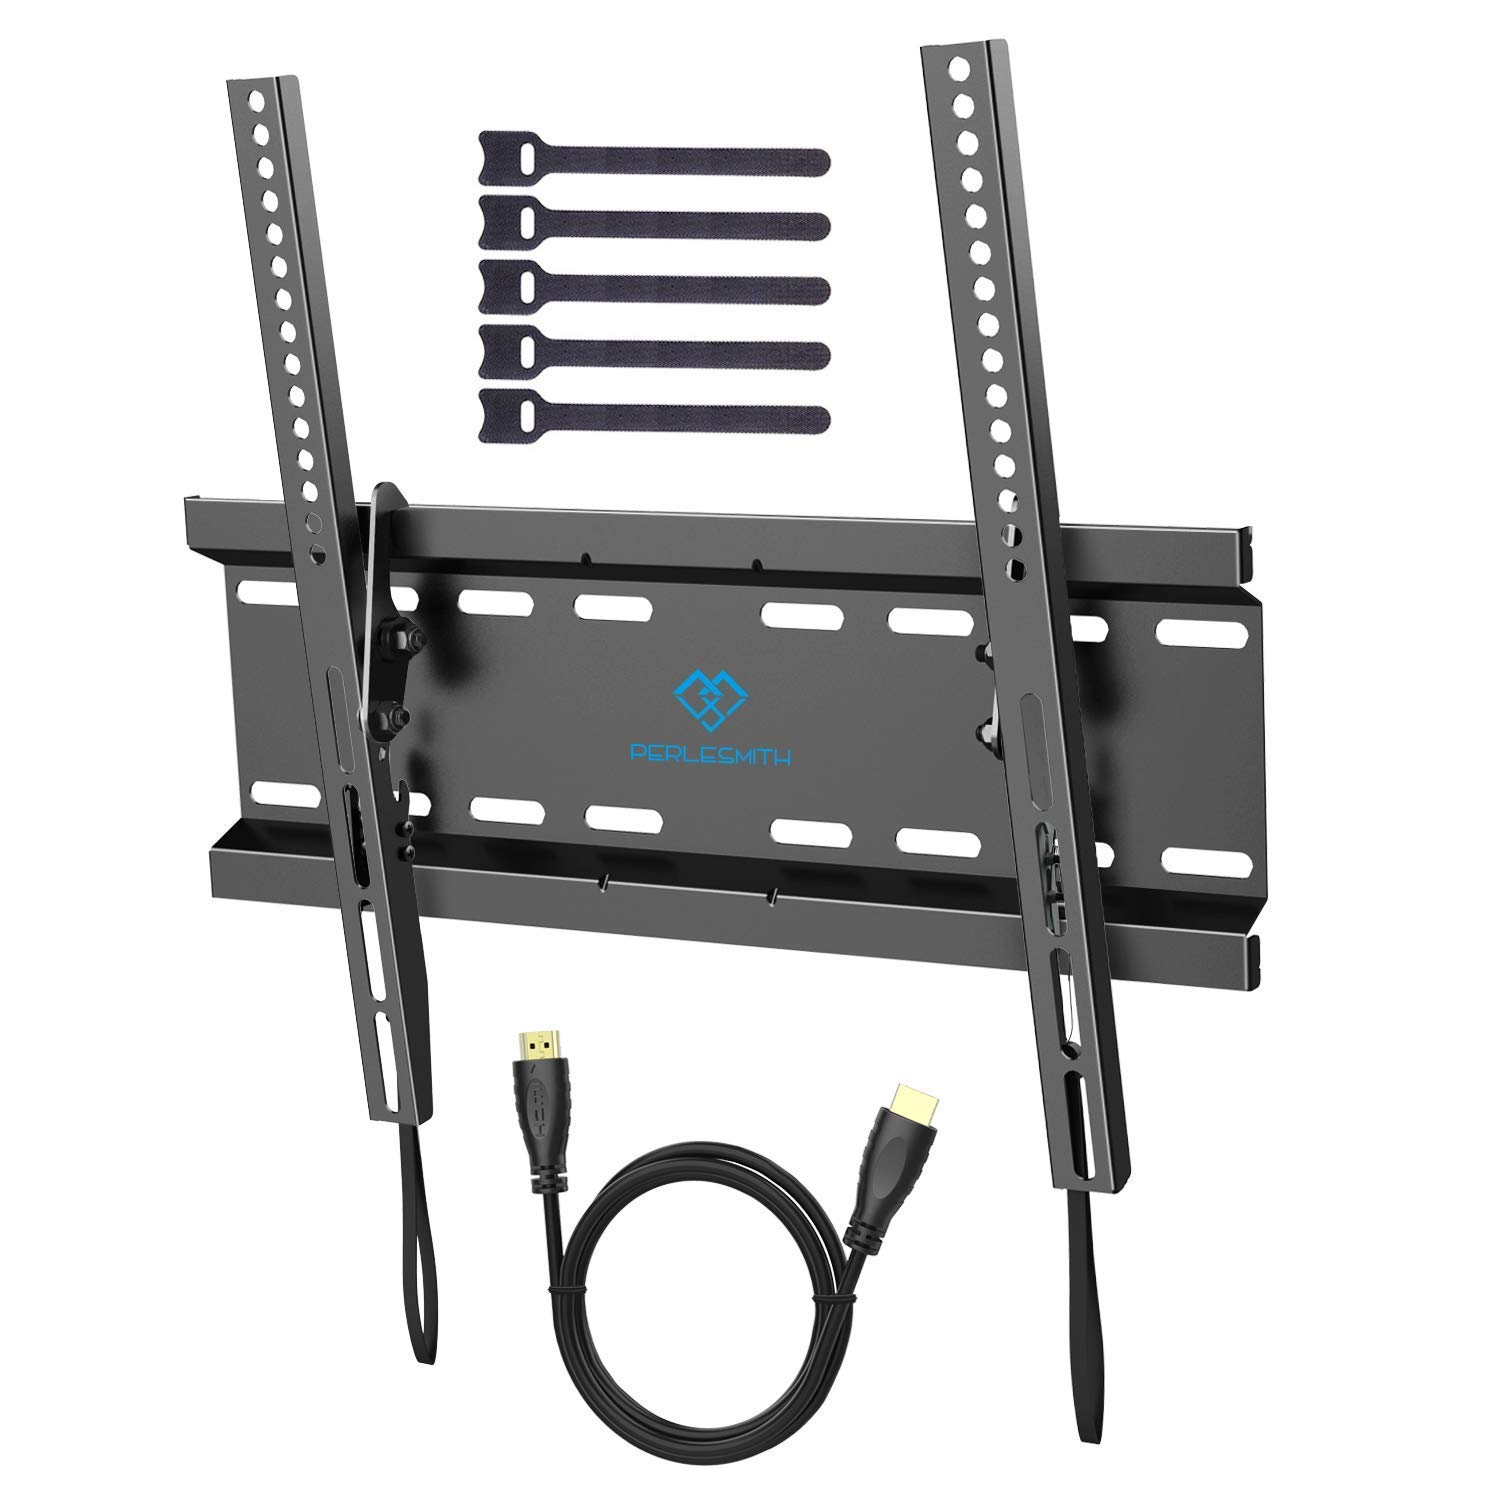 TV Wall Mount Bracket Tilt Low Profile for Most 23-55 Inch LED, LCD, OLED, Plasma Flat Screen TVs with VESA up to 115lbs (52.3kg) 400x400mm - Bonus HDMI Cable and Cable Ties by PERLESMITH PSMTK1-C